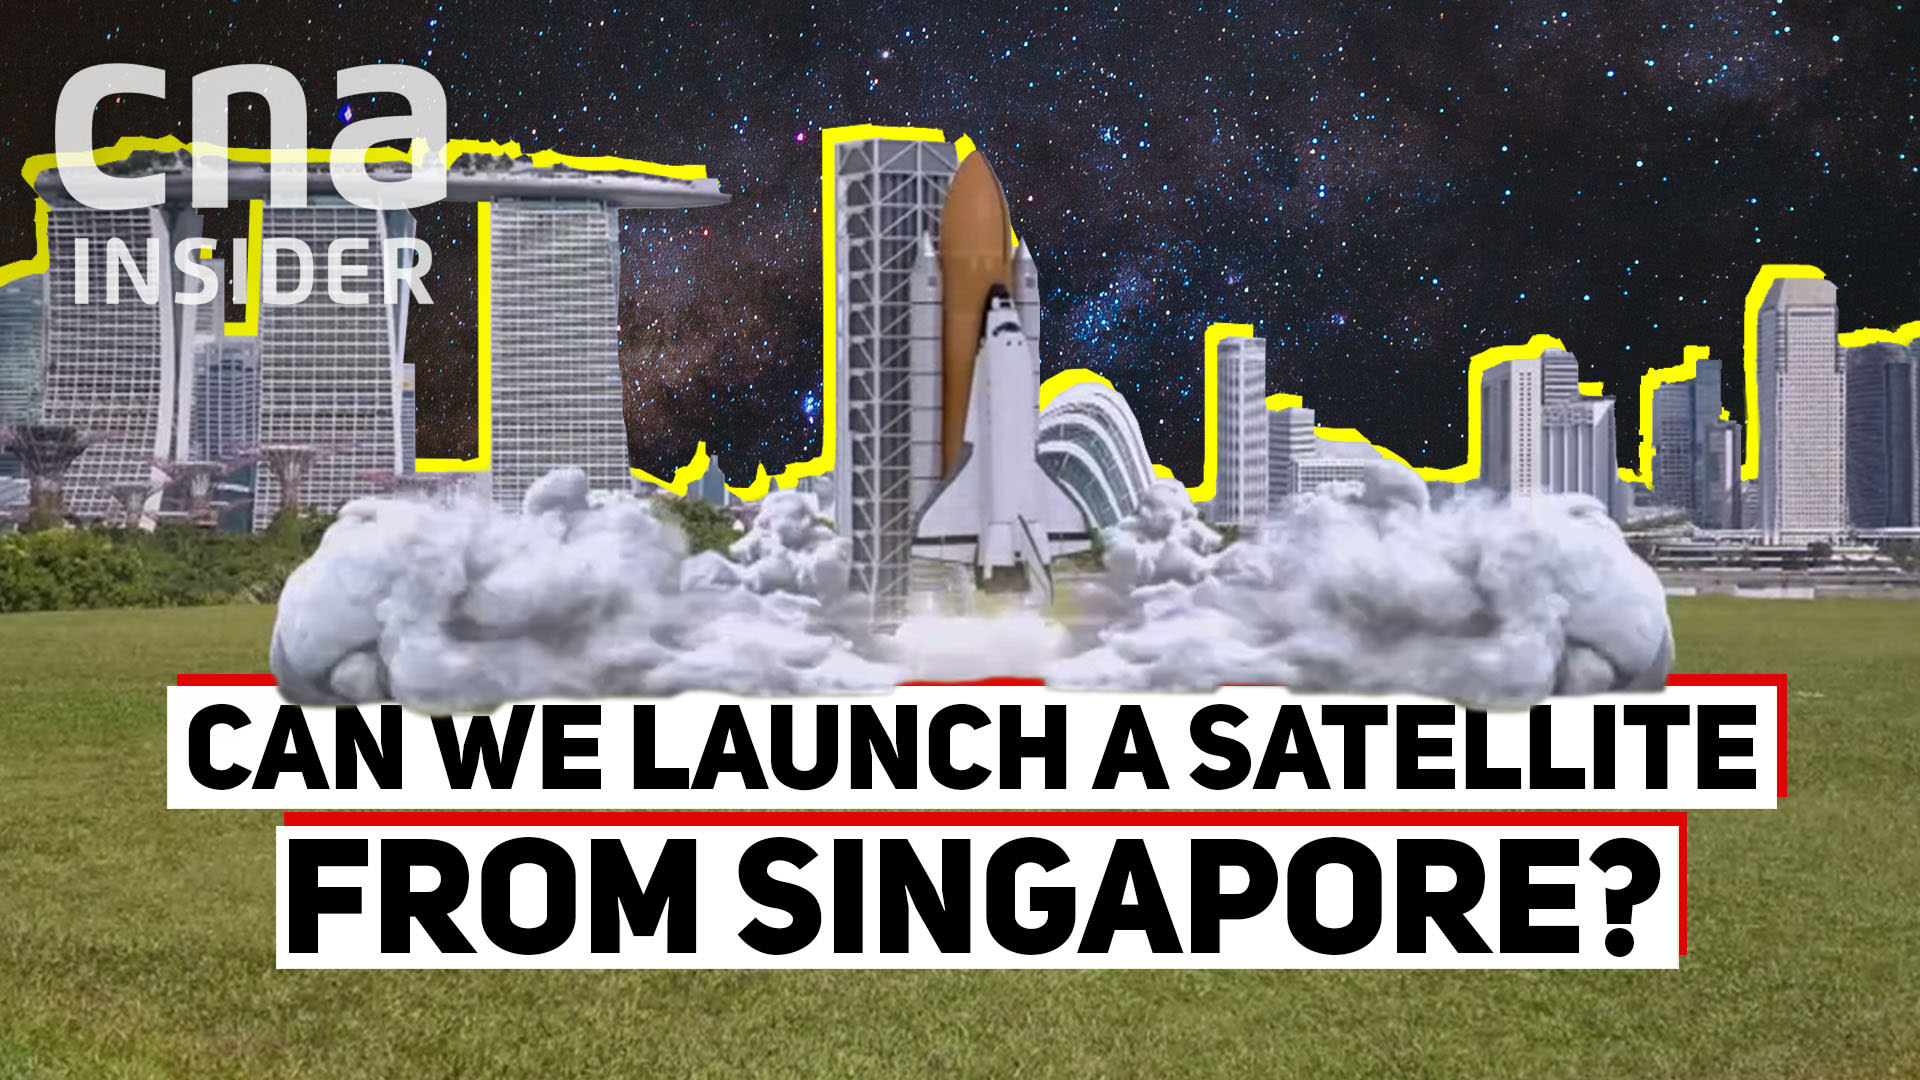 Singapore's 'space force': Entrepreneurs blasting their way into outer space